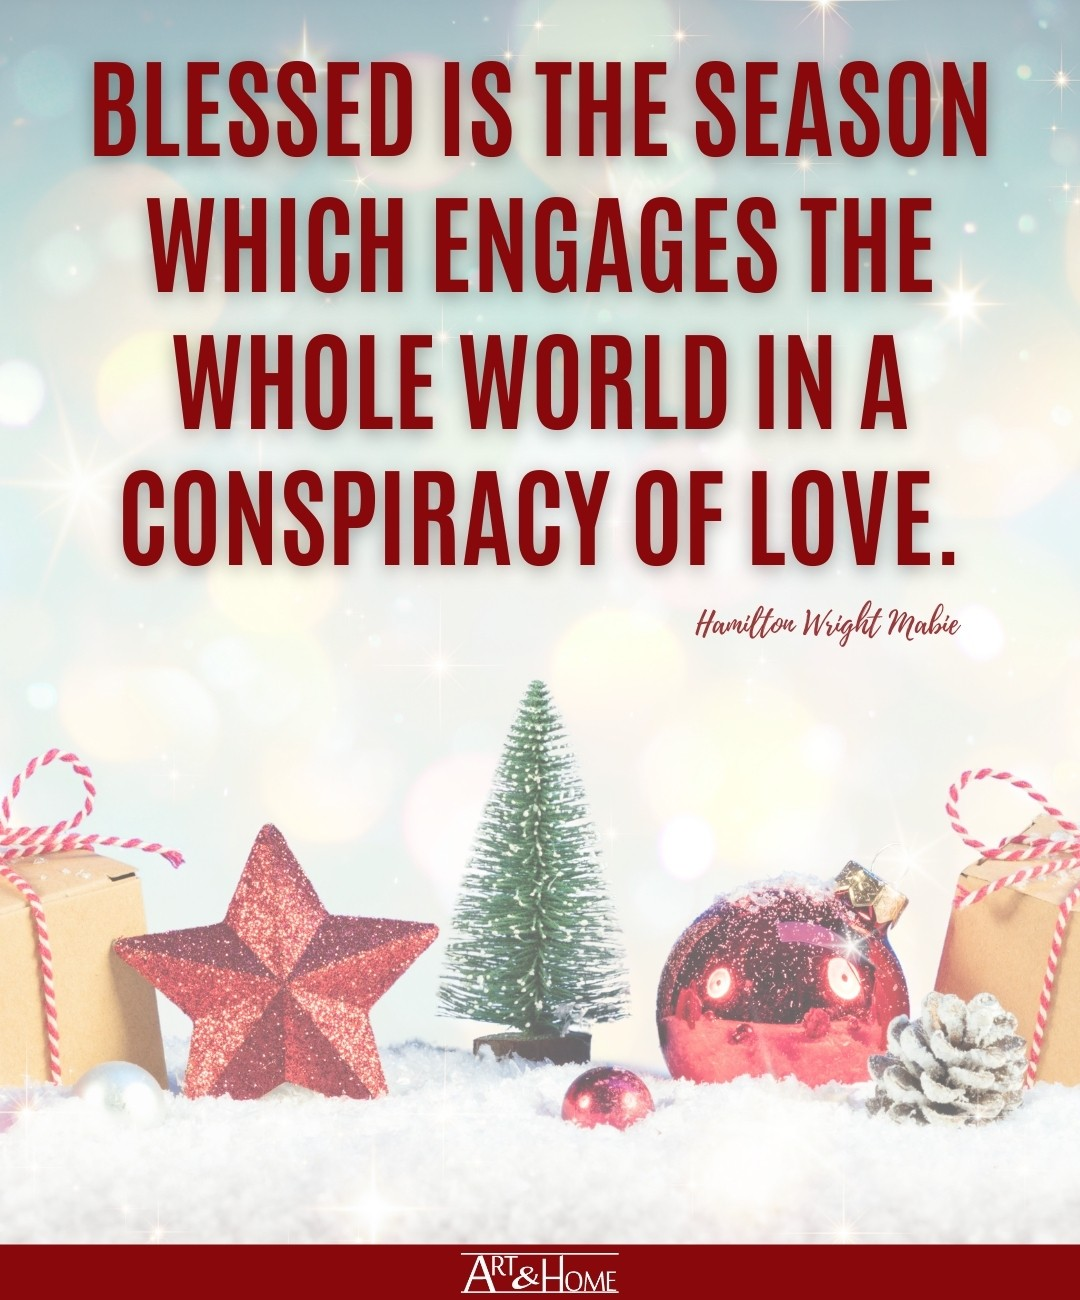 Blessed is the season which engages the whole world in a conspiracy of love. Hamilton Wright Mabie quote.